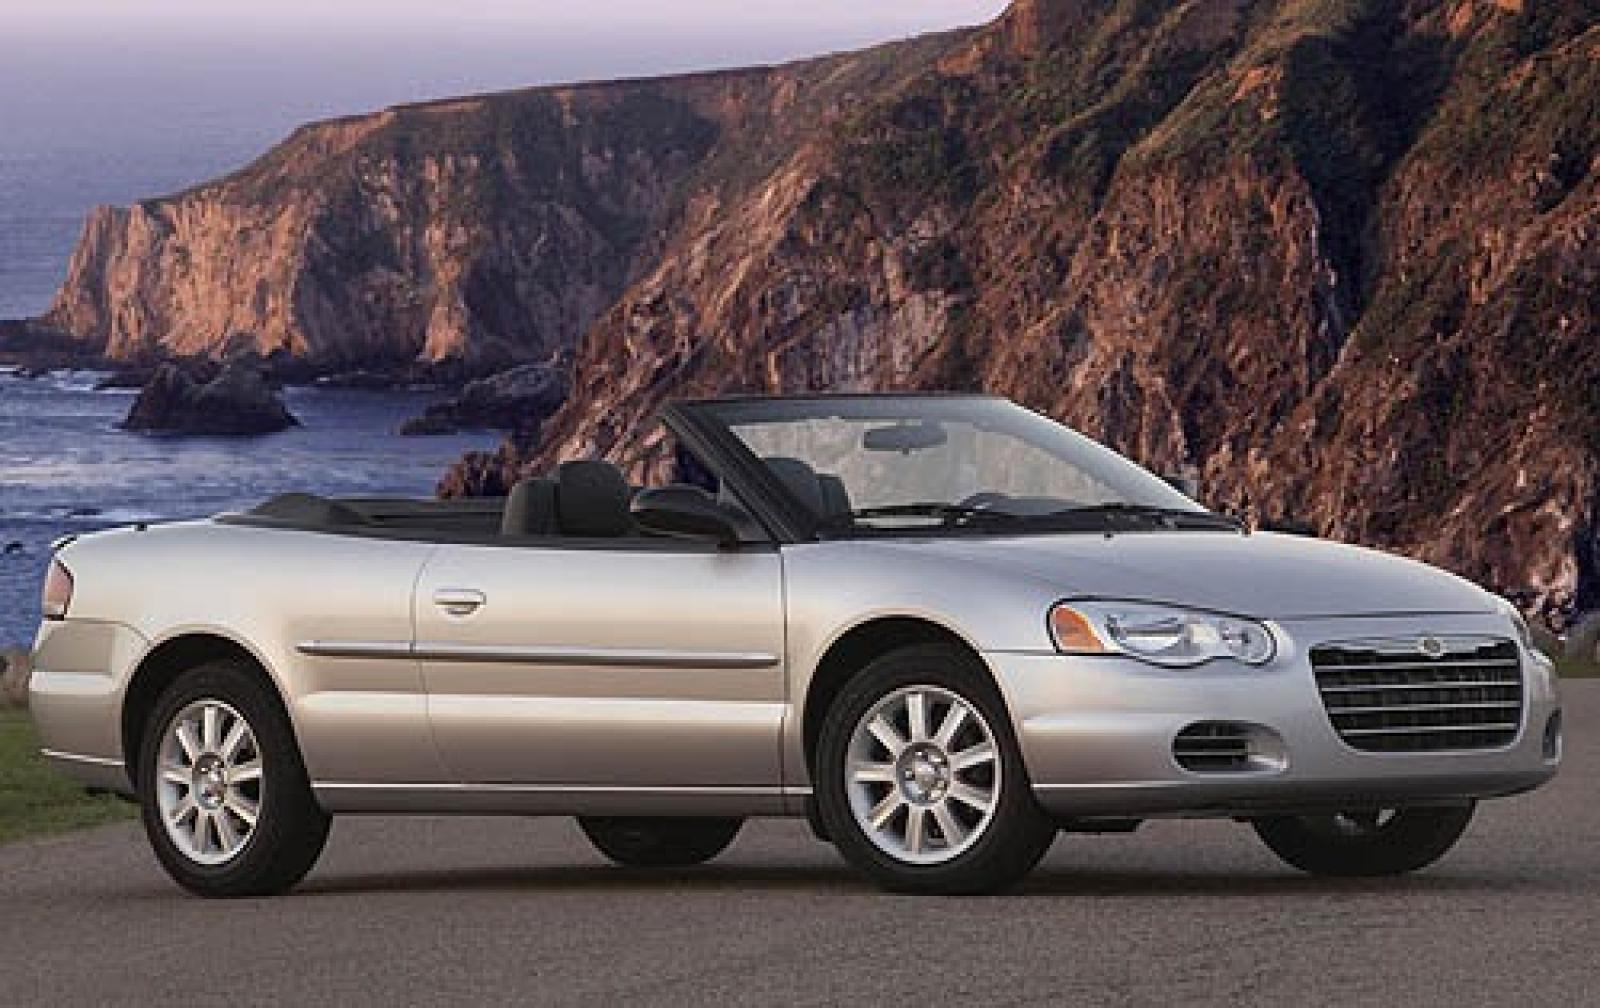 2006 chrysler sebring information and photos zombiedrive. Black Bedroom Furniture Sets. Home Design Ideas